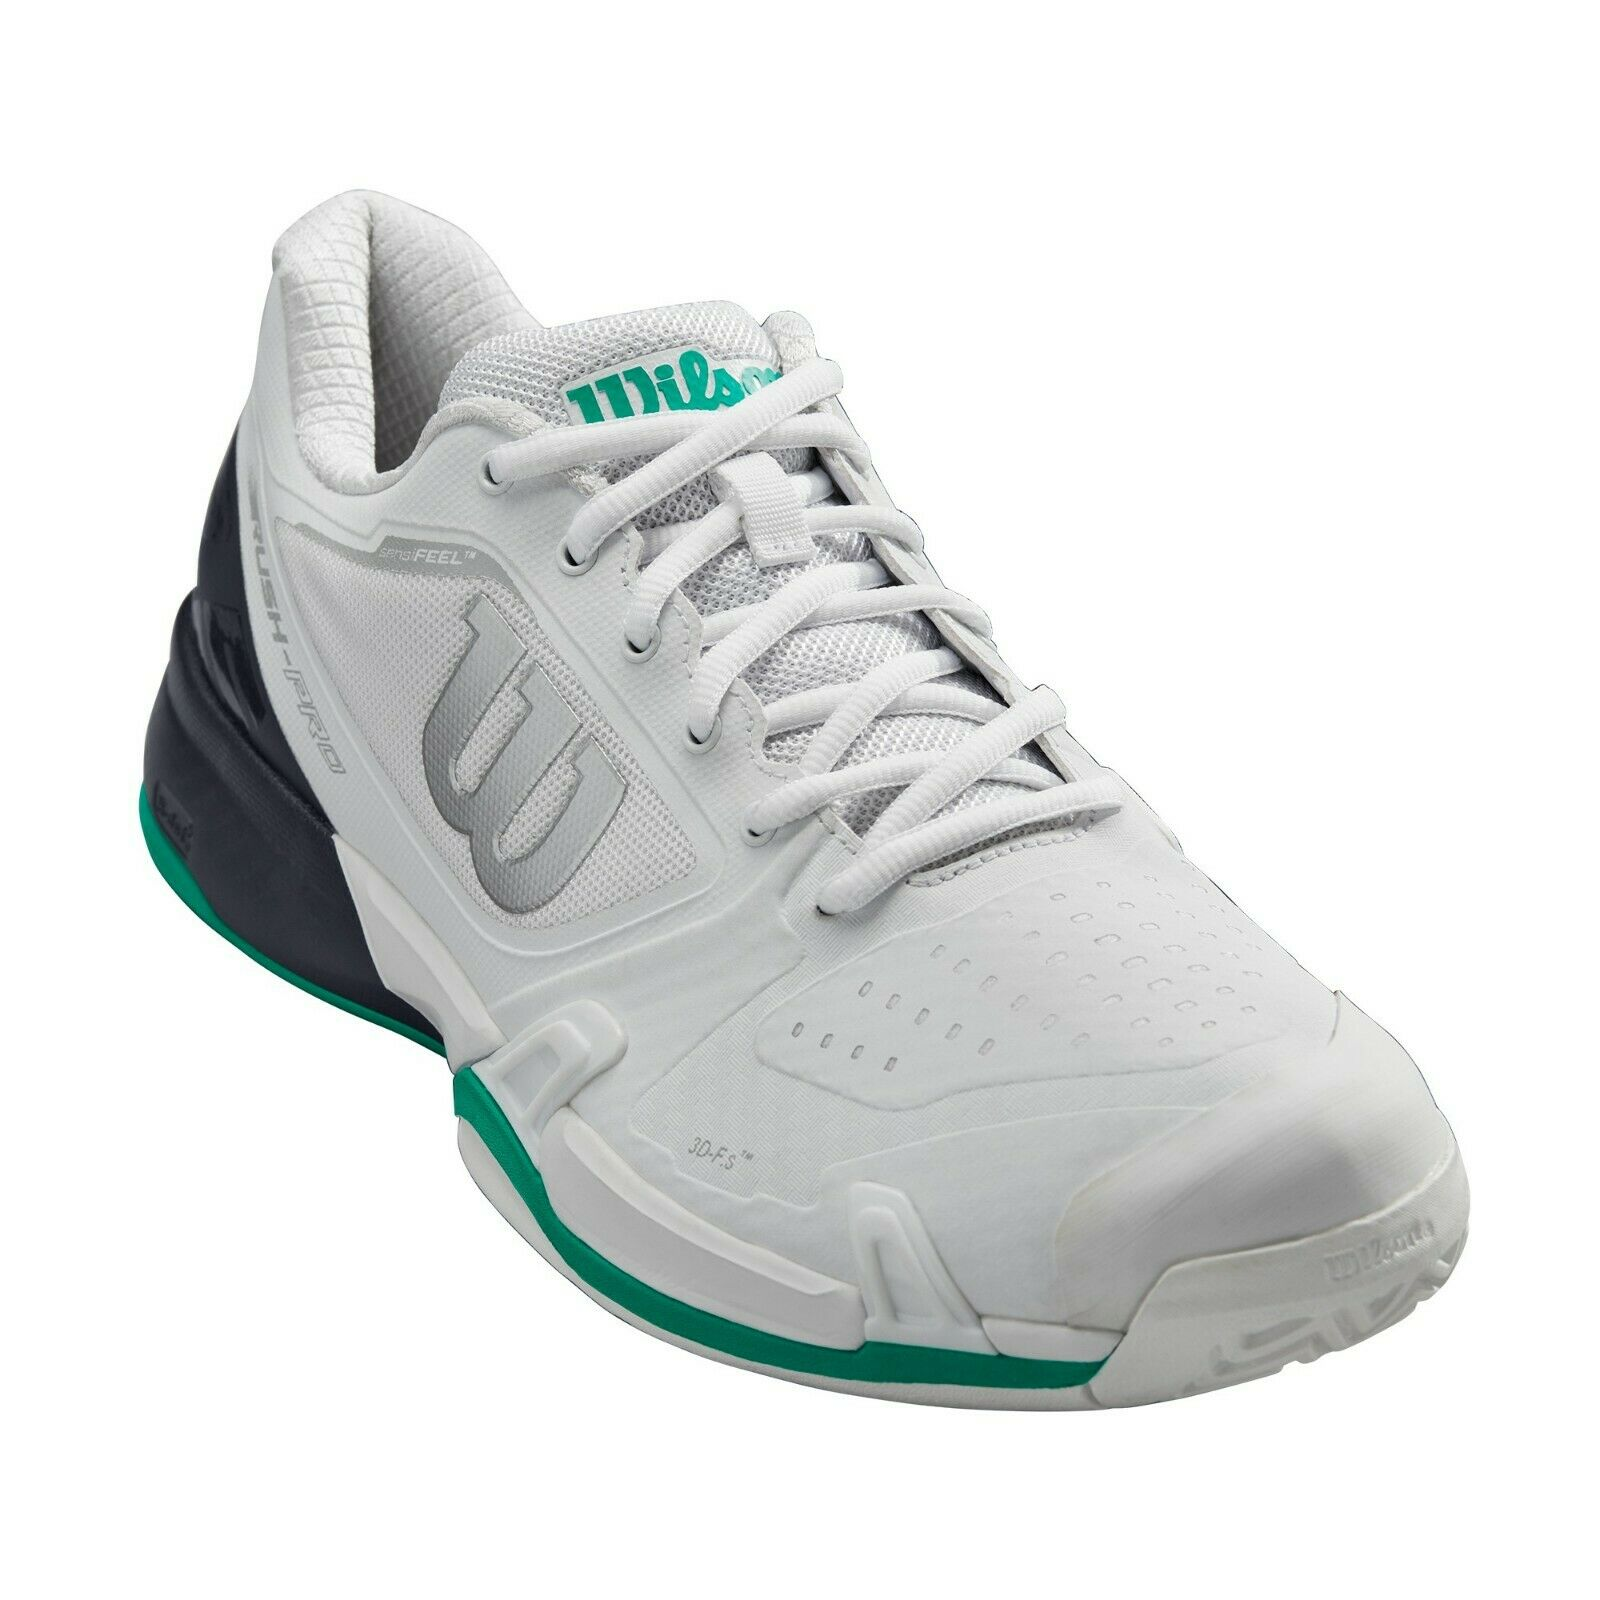 Purchase of Wilson will win rush 2.5 professional mens tennis shoes in white and green